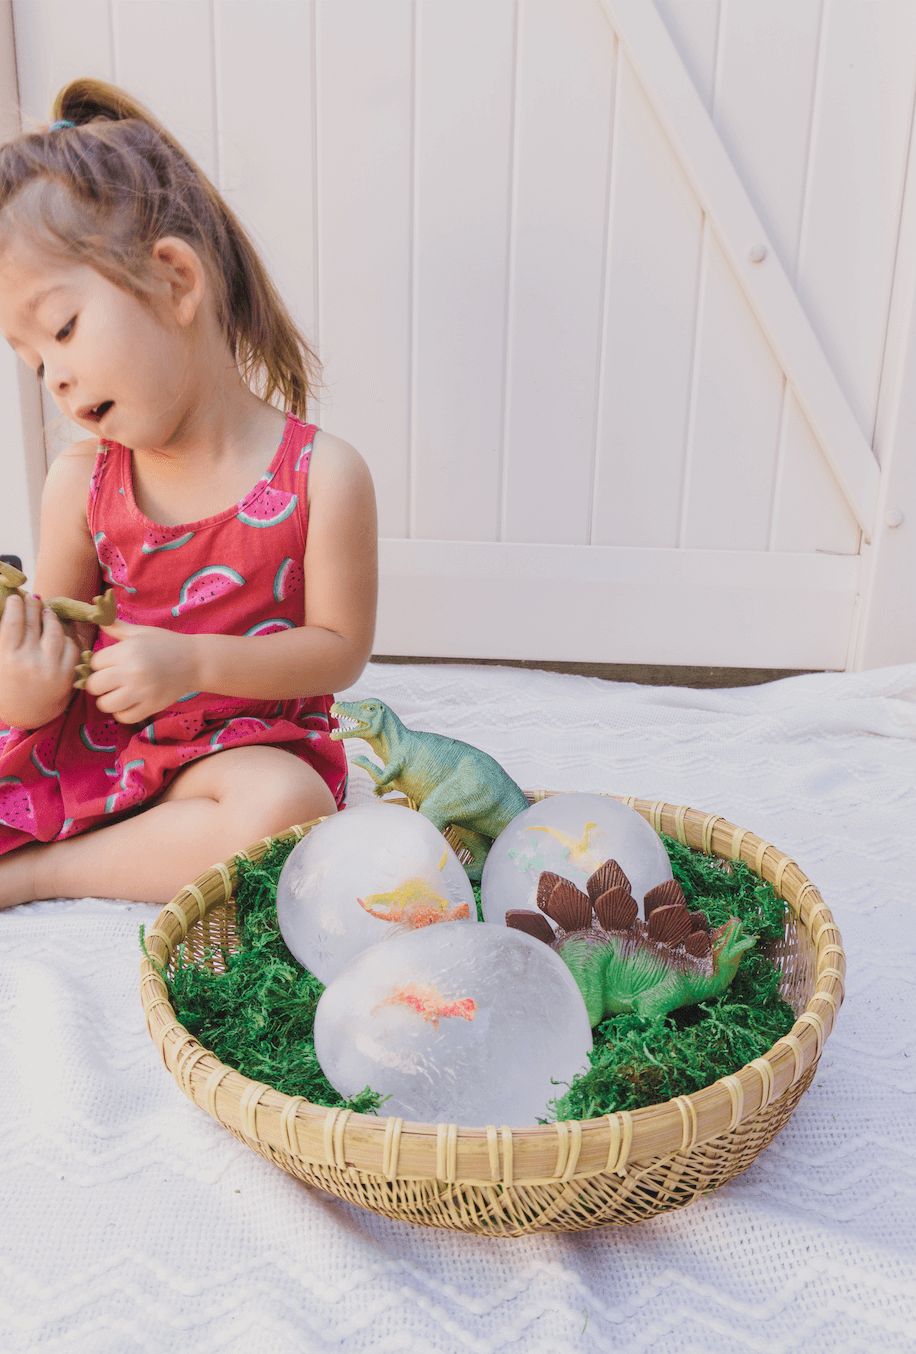 Frozen Dinosaur Eggs - Toddler, Kids, Preschool Sensory and STEM activity - Easy Hatching Dino DIY Craft - Easy Science - Dinosaur Party - Outdoor Game - tiffanieanne.com8